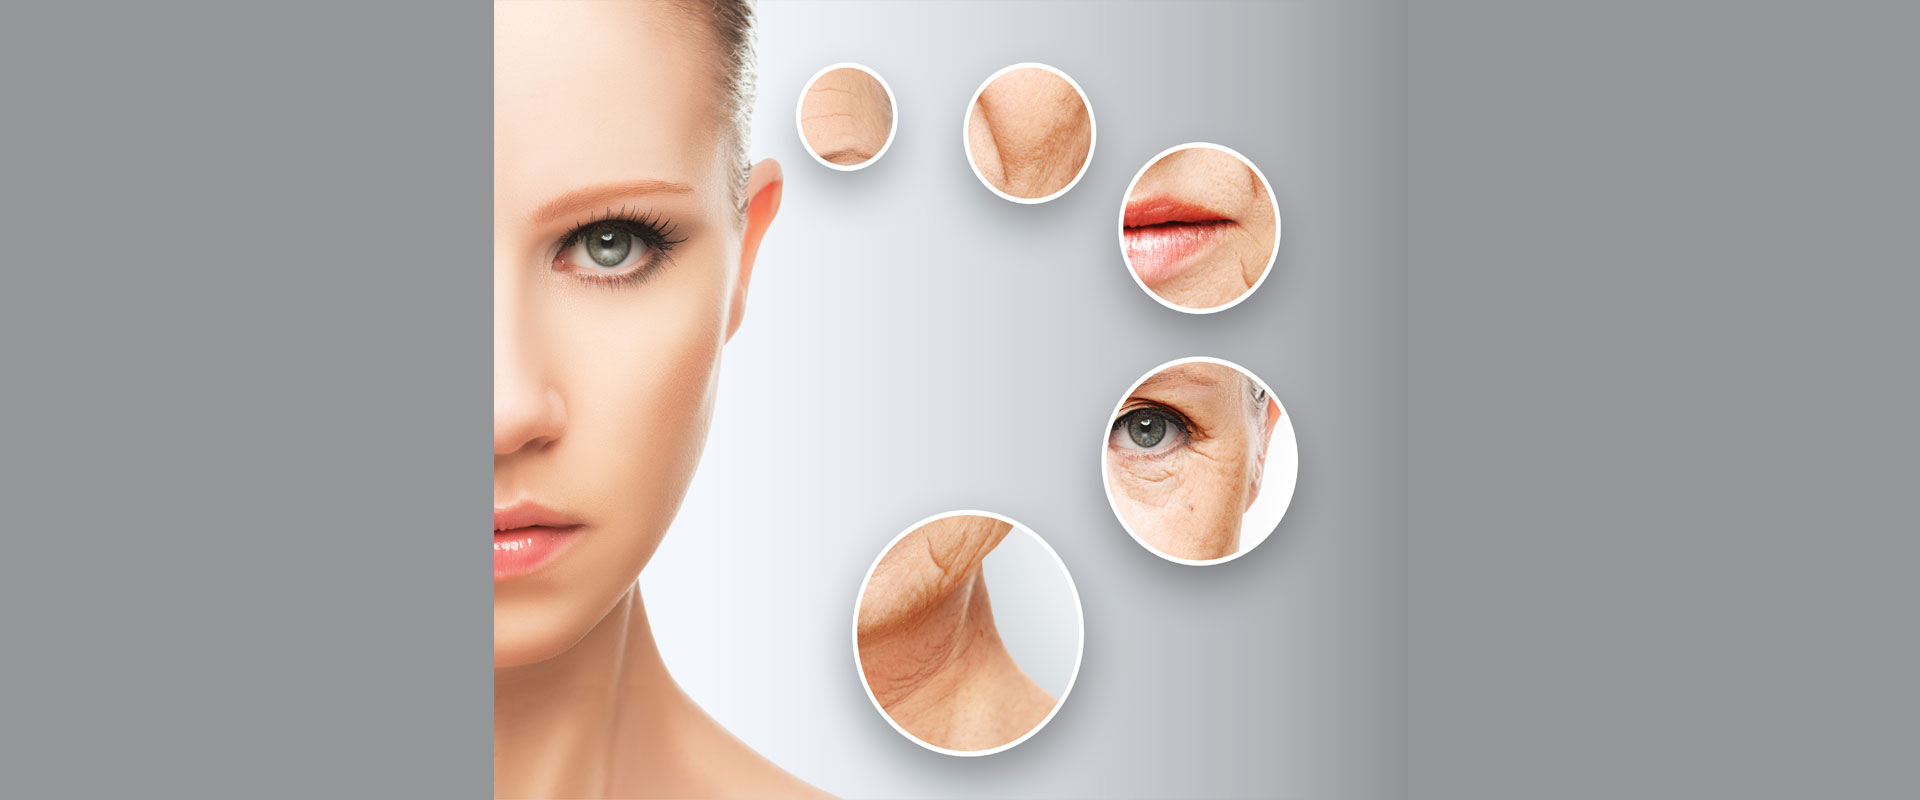 Facial enhancement therapy